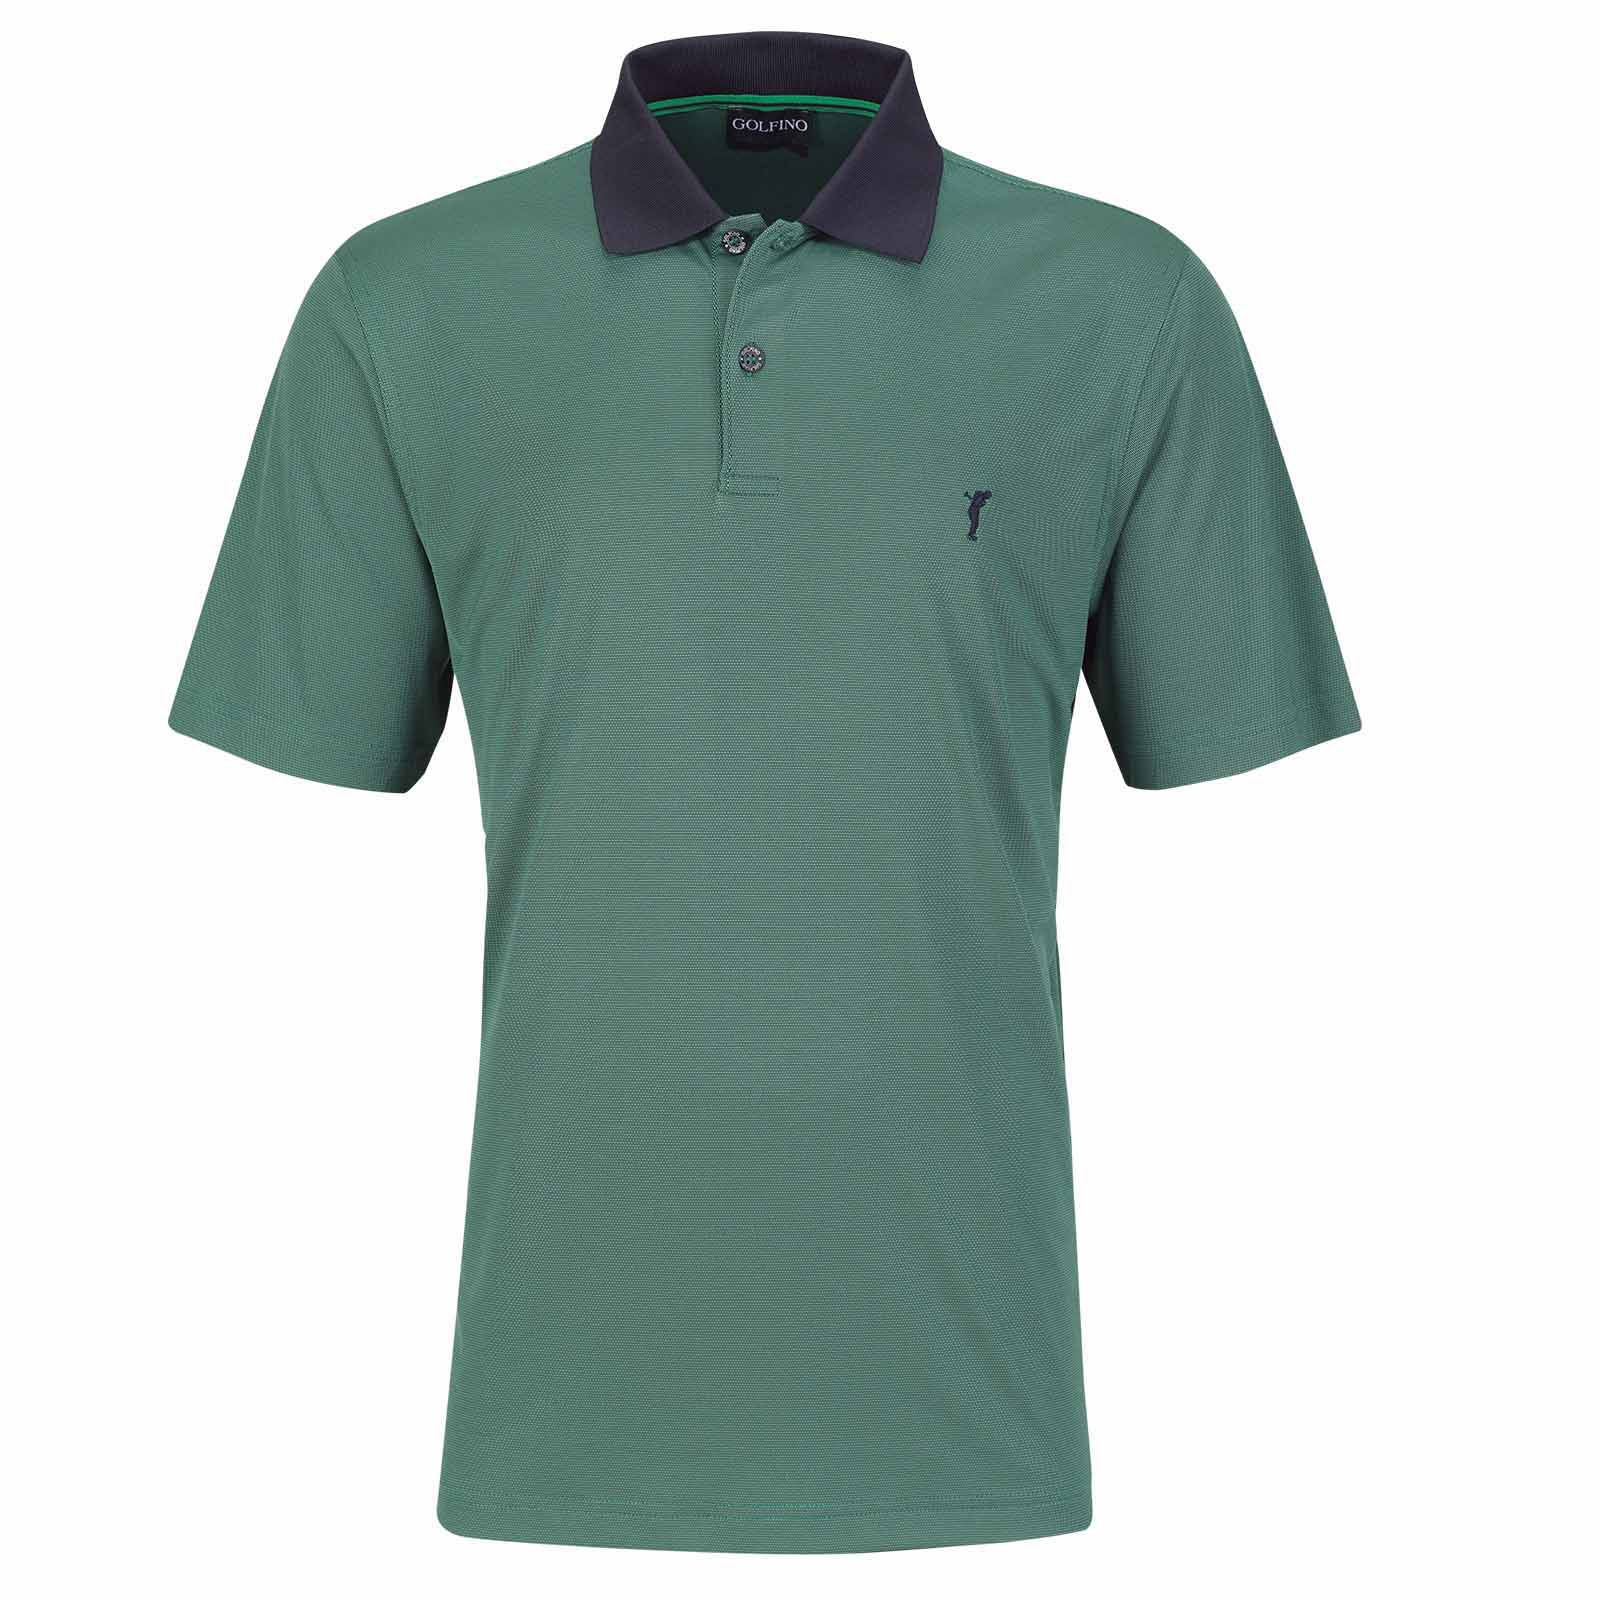 Herren Kurzarm Polo mit schnelltrocknender Funktion in Regular Fit